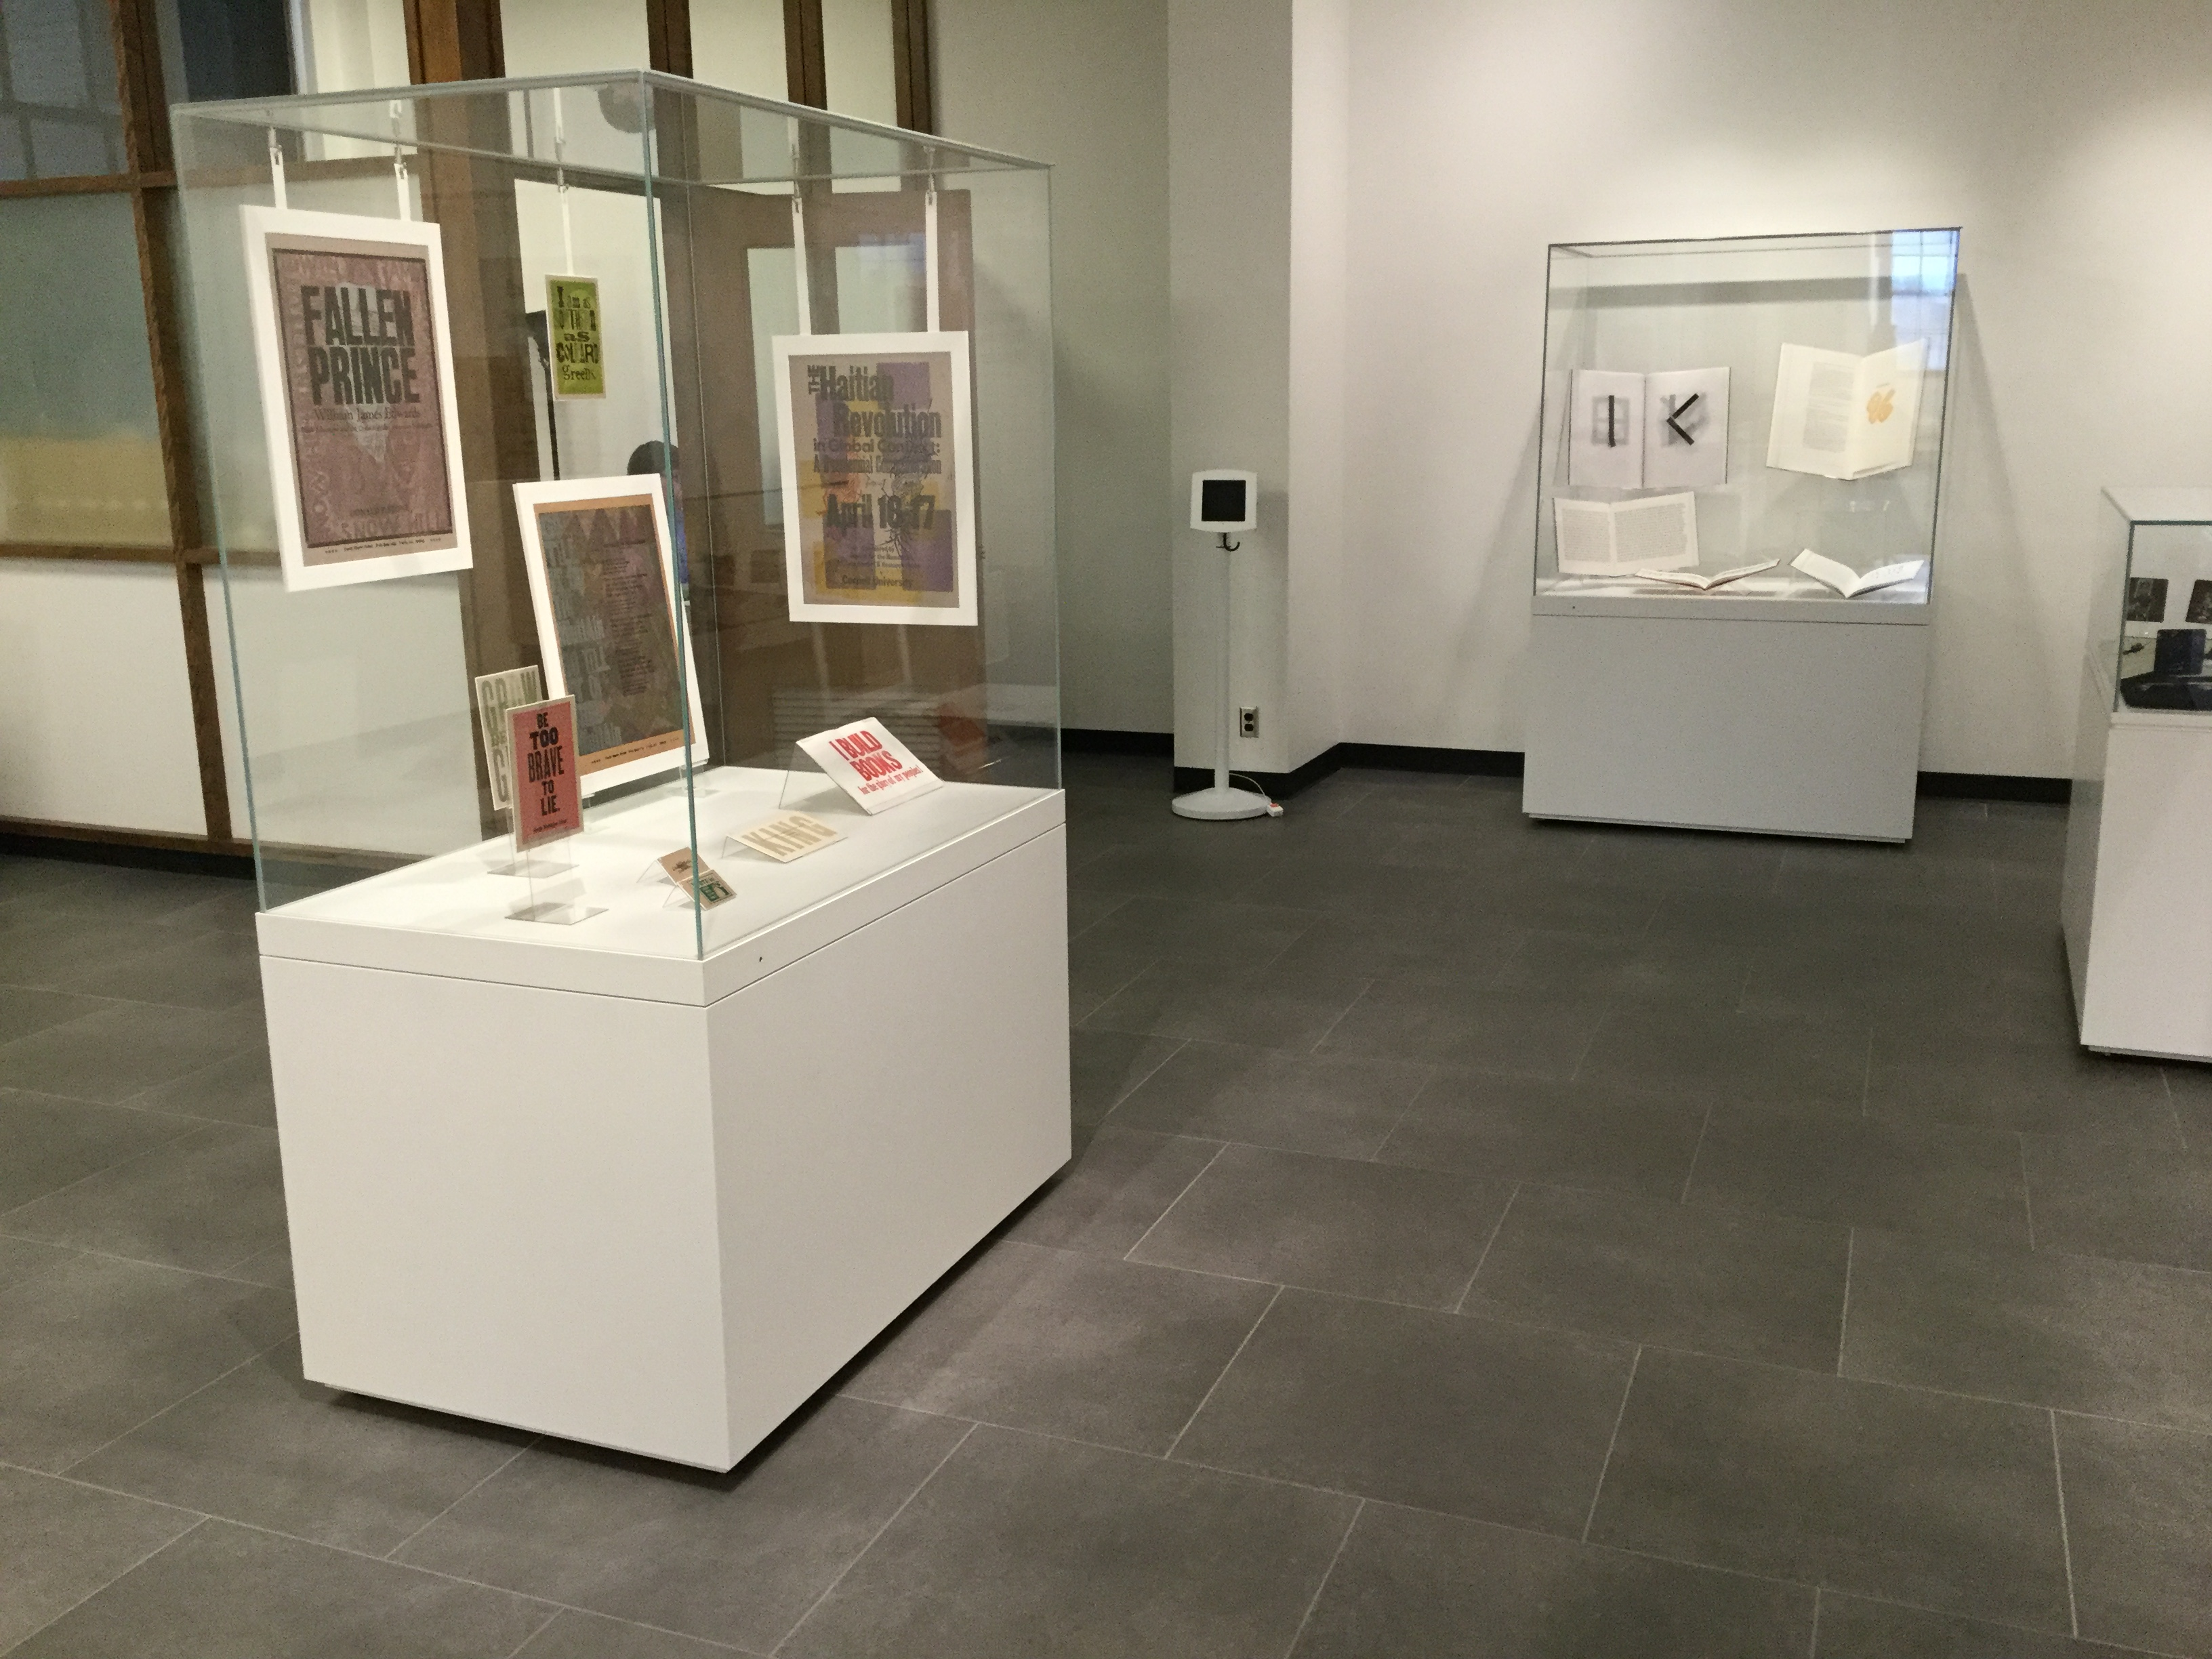 Items from the collection will be on display in the Ellen and Nirmal Chatterjee Exhibition Gallery in RBML.